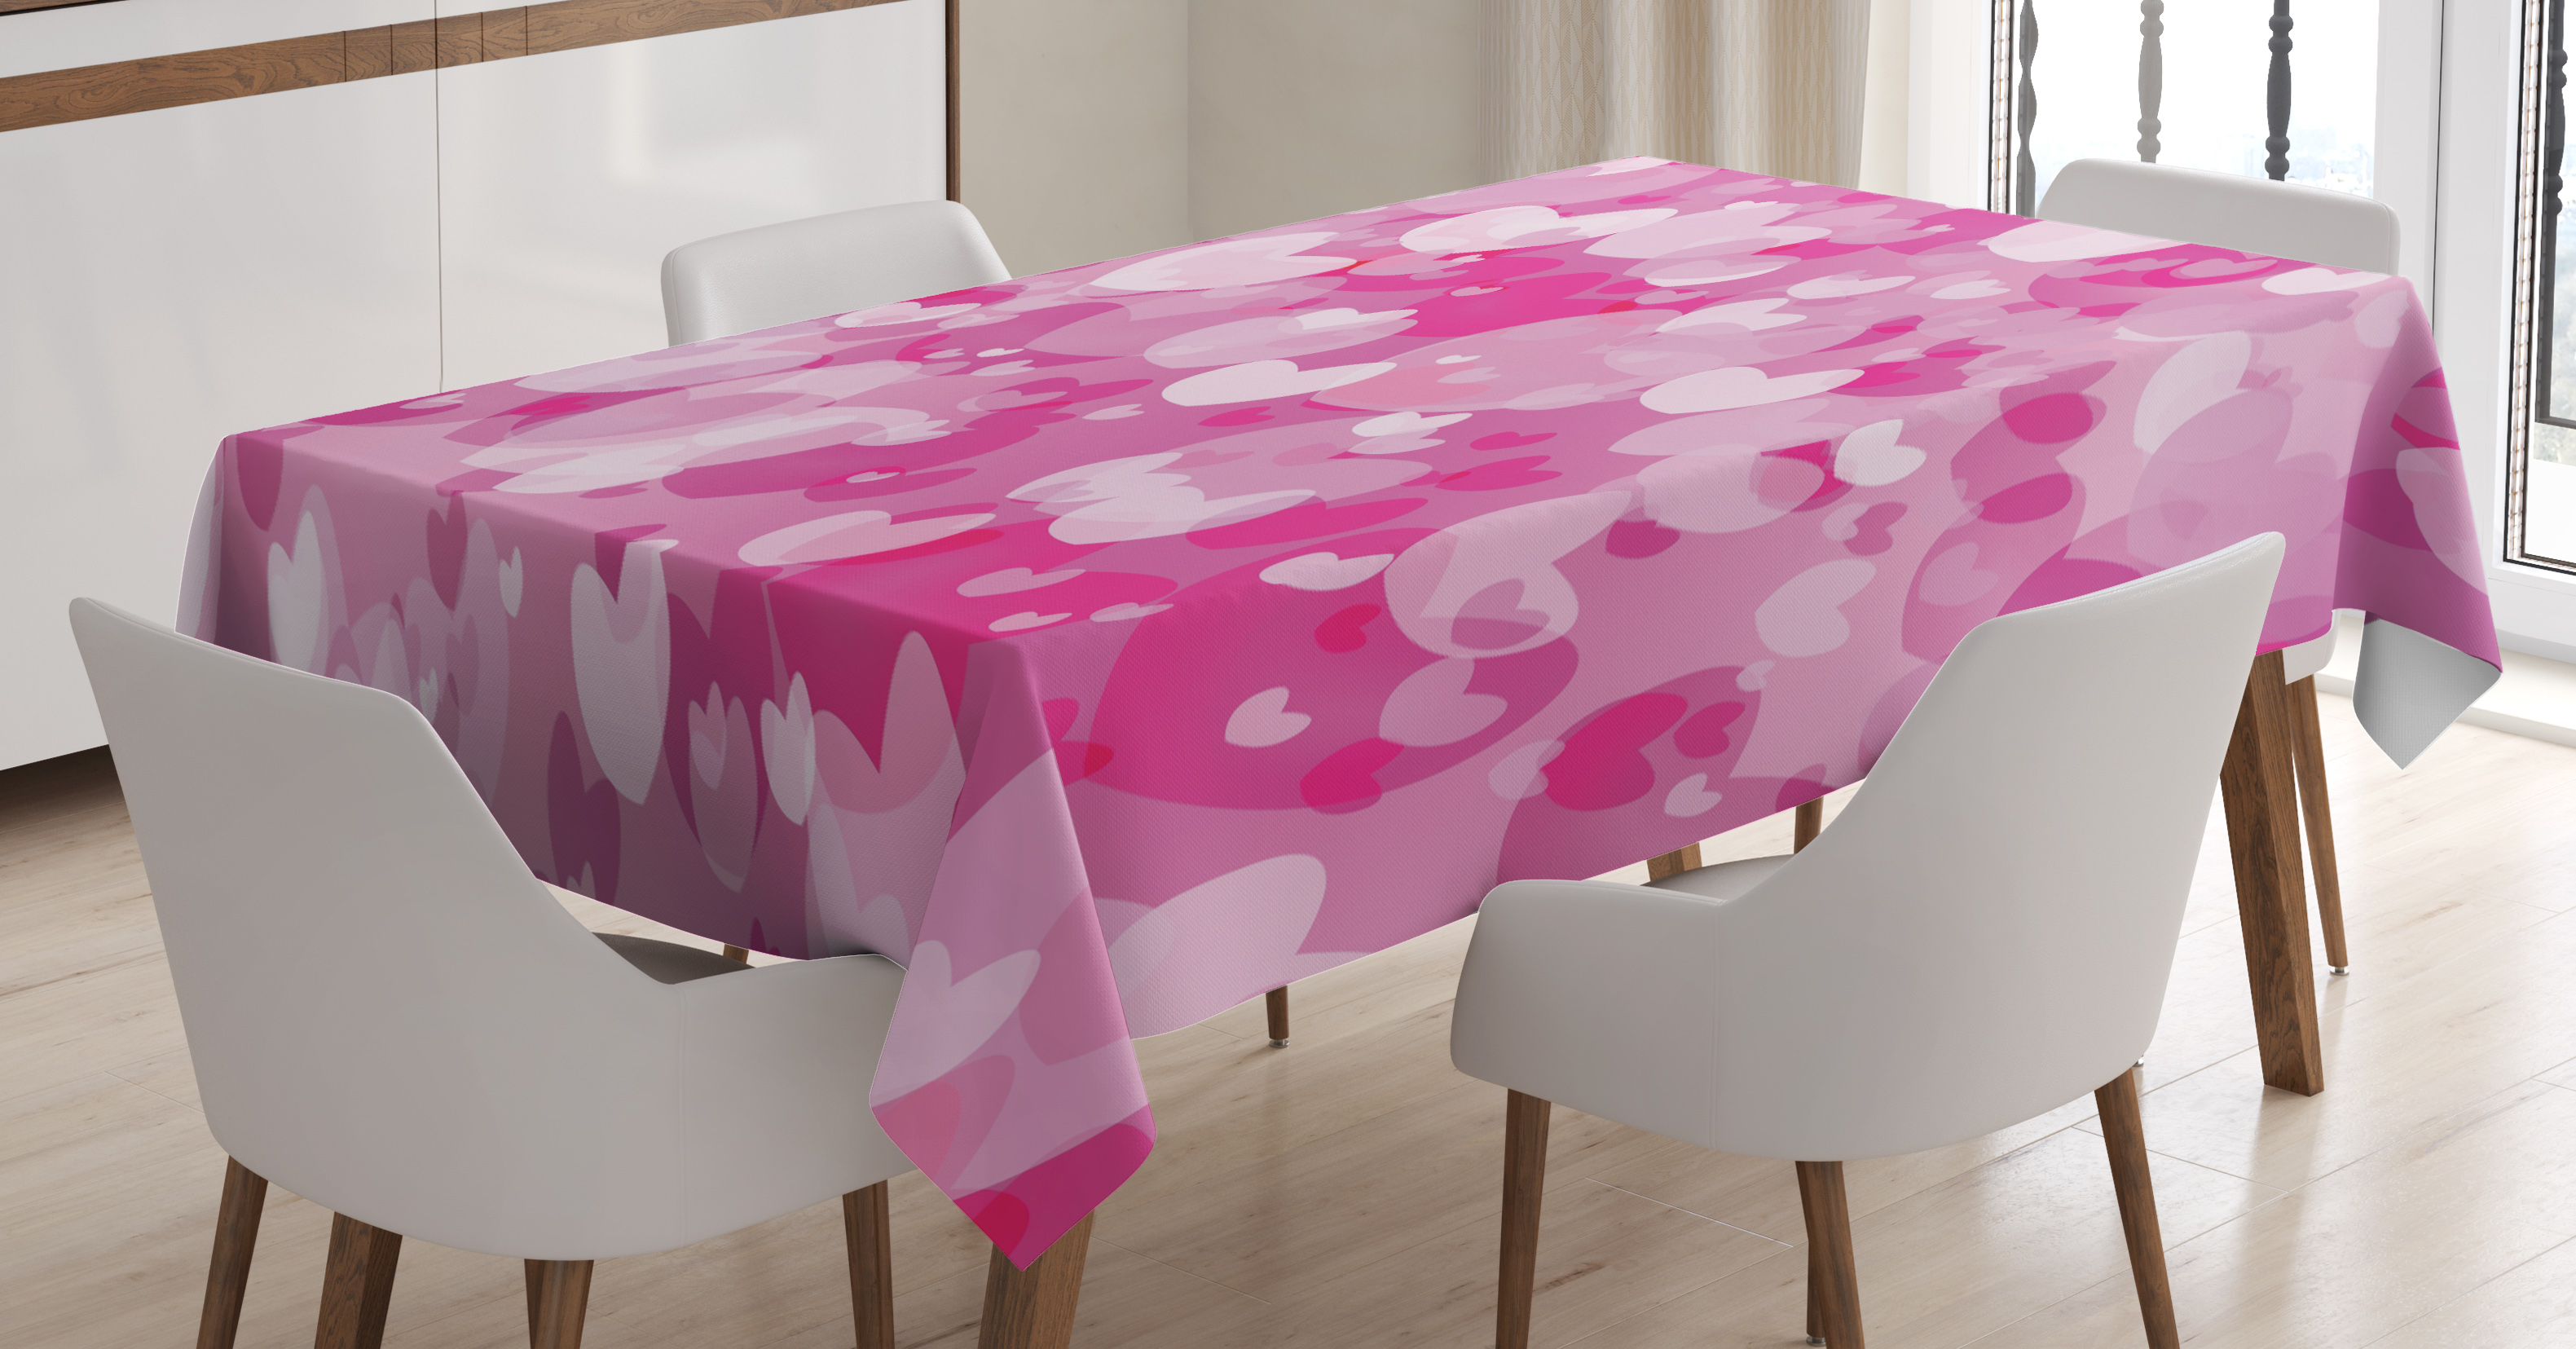 Hot Pink Tablecloth, Image Consisting Of Various Shaped Vibrant Colored  Hearts Love Valentines, Rectangular